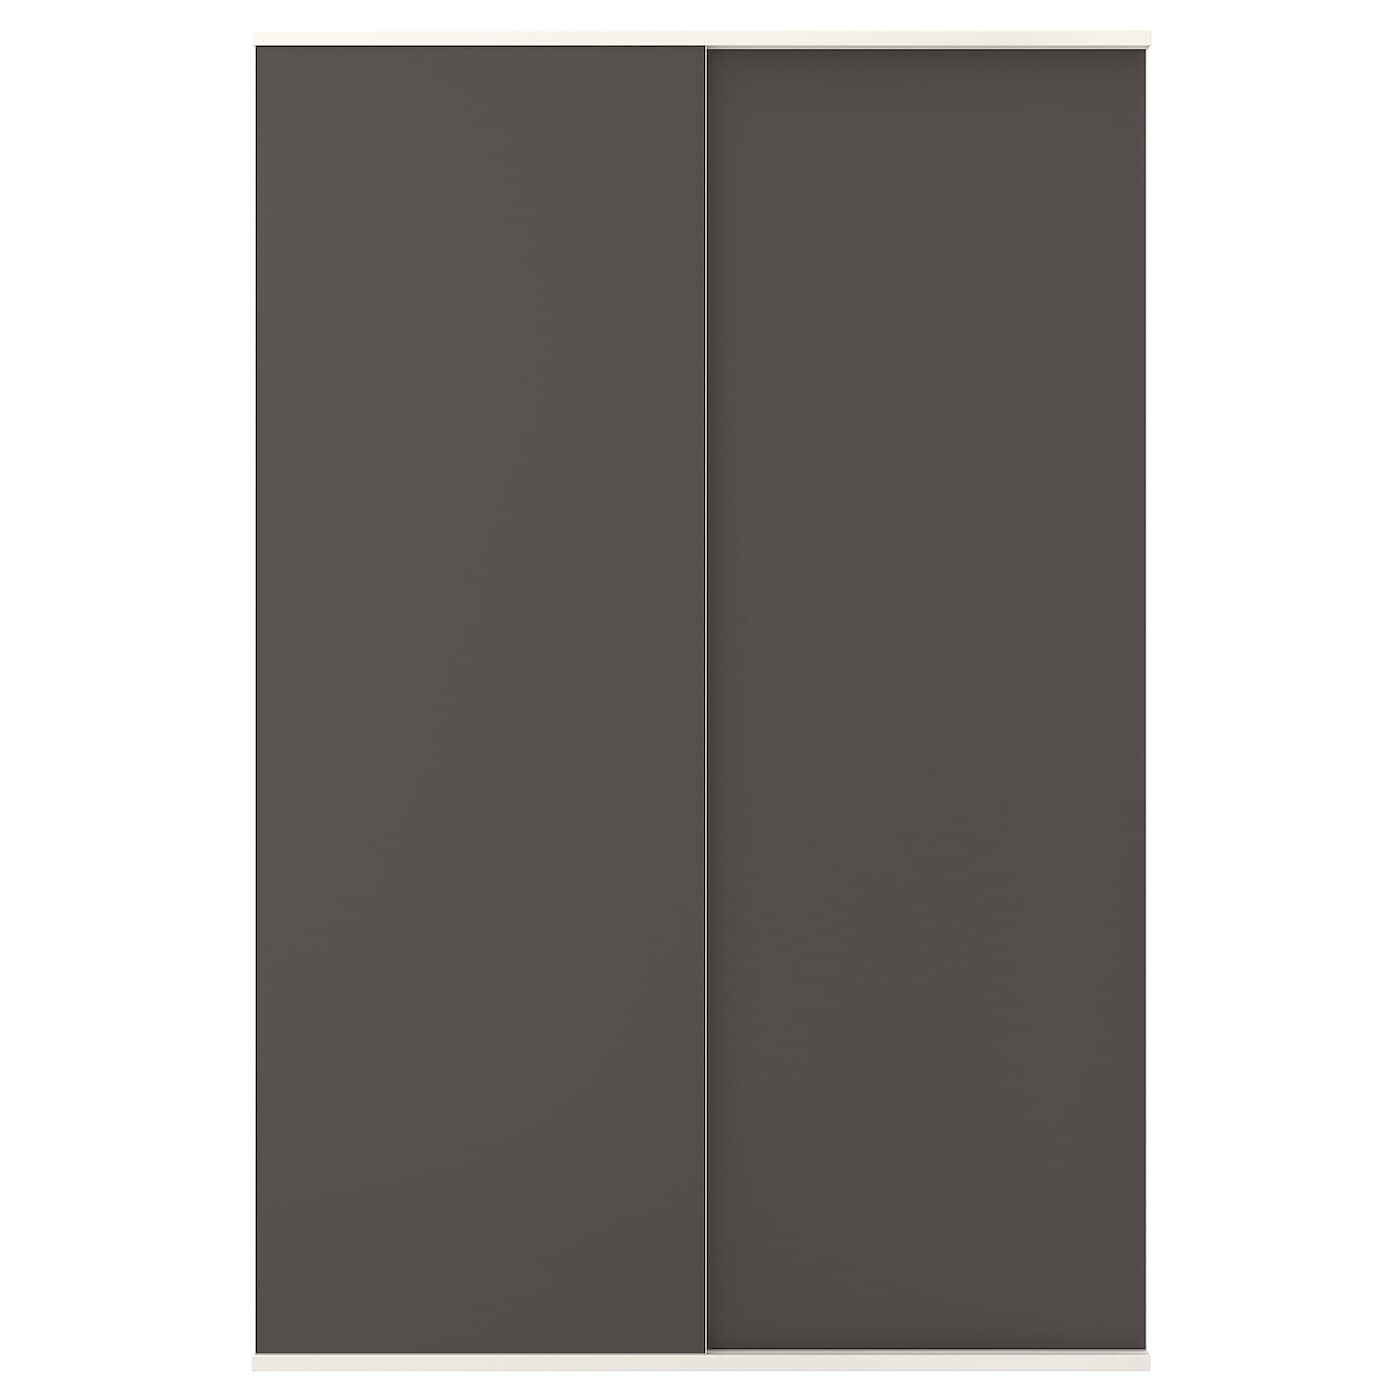 skatval porte coulissante avec rail gris fonc 120 x 180 cm ikea. Black Bedroom Furniture Sets. Home Design Ideas